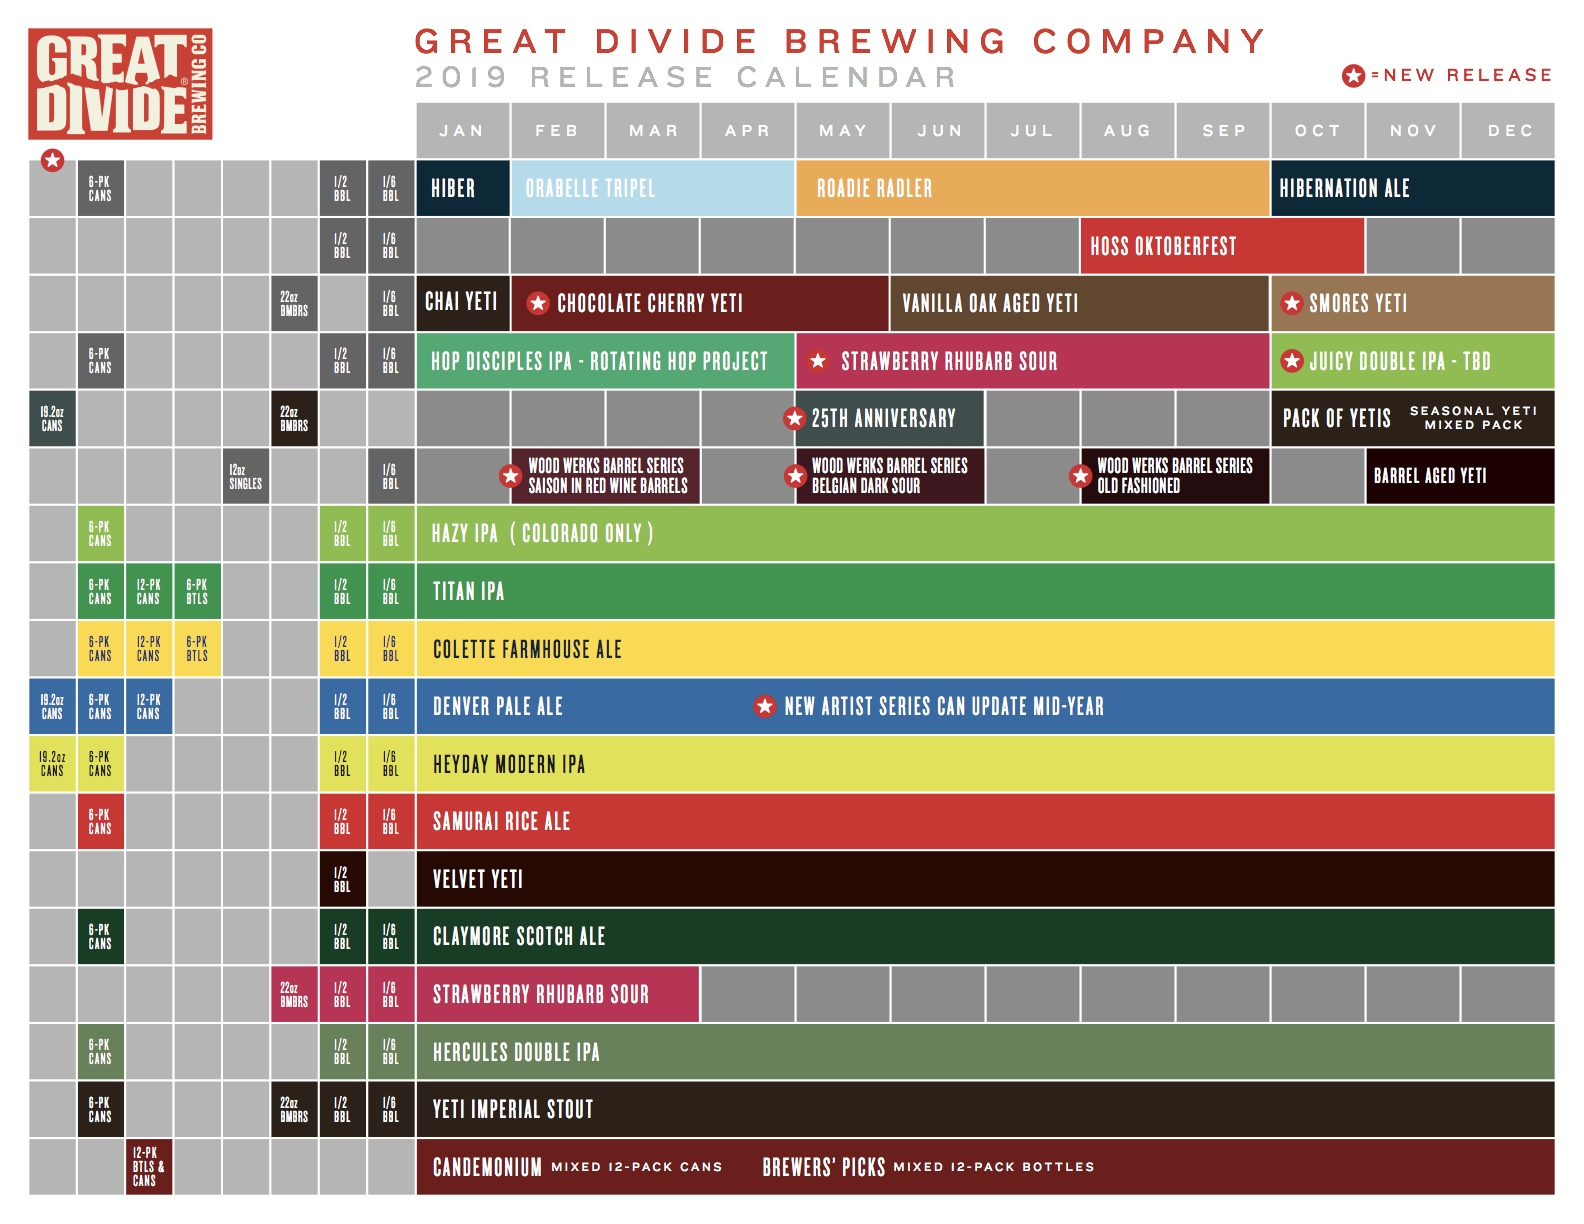 image sourced from Great Divide Brewing Company